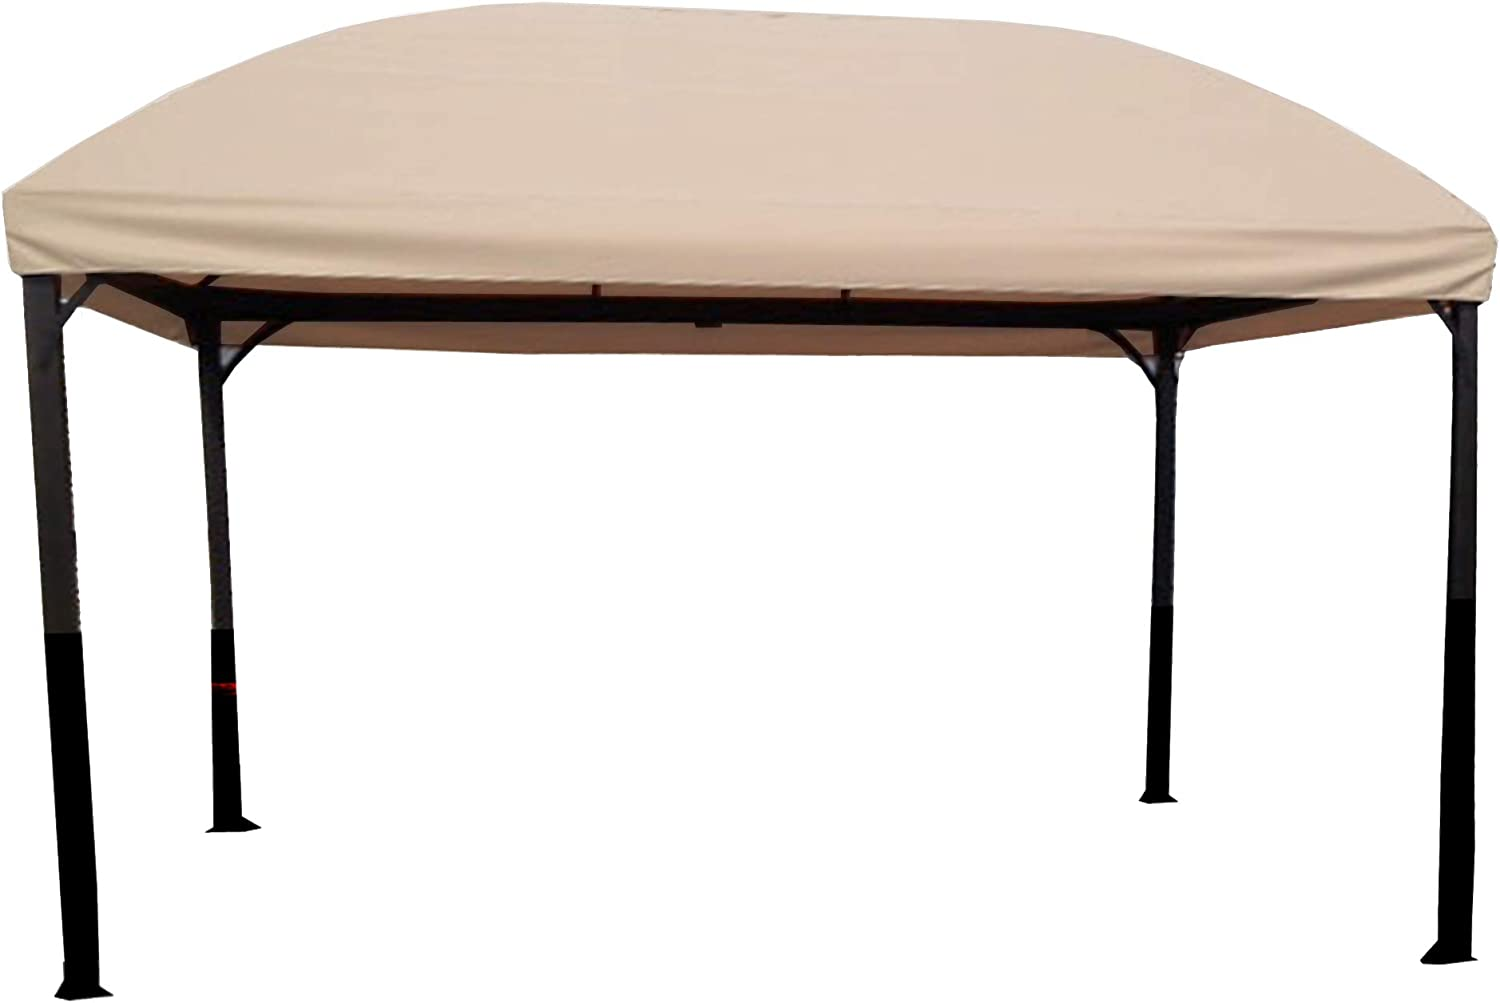 Garden Winds Replacement Canopy for The Menards Dome Gazebo - Standard 350 - Beige